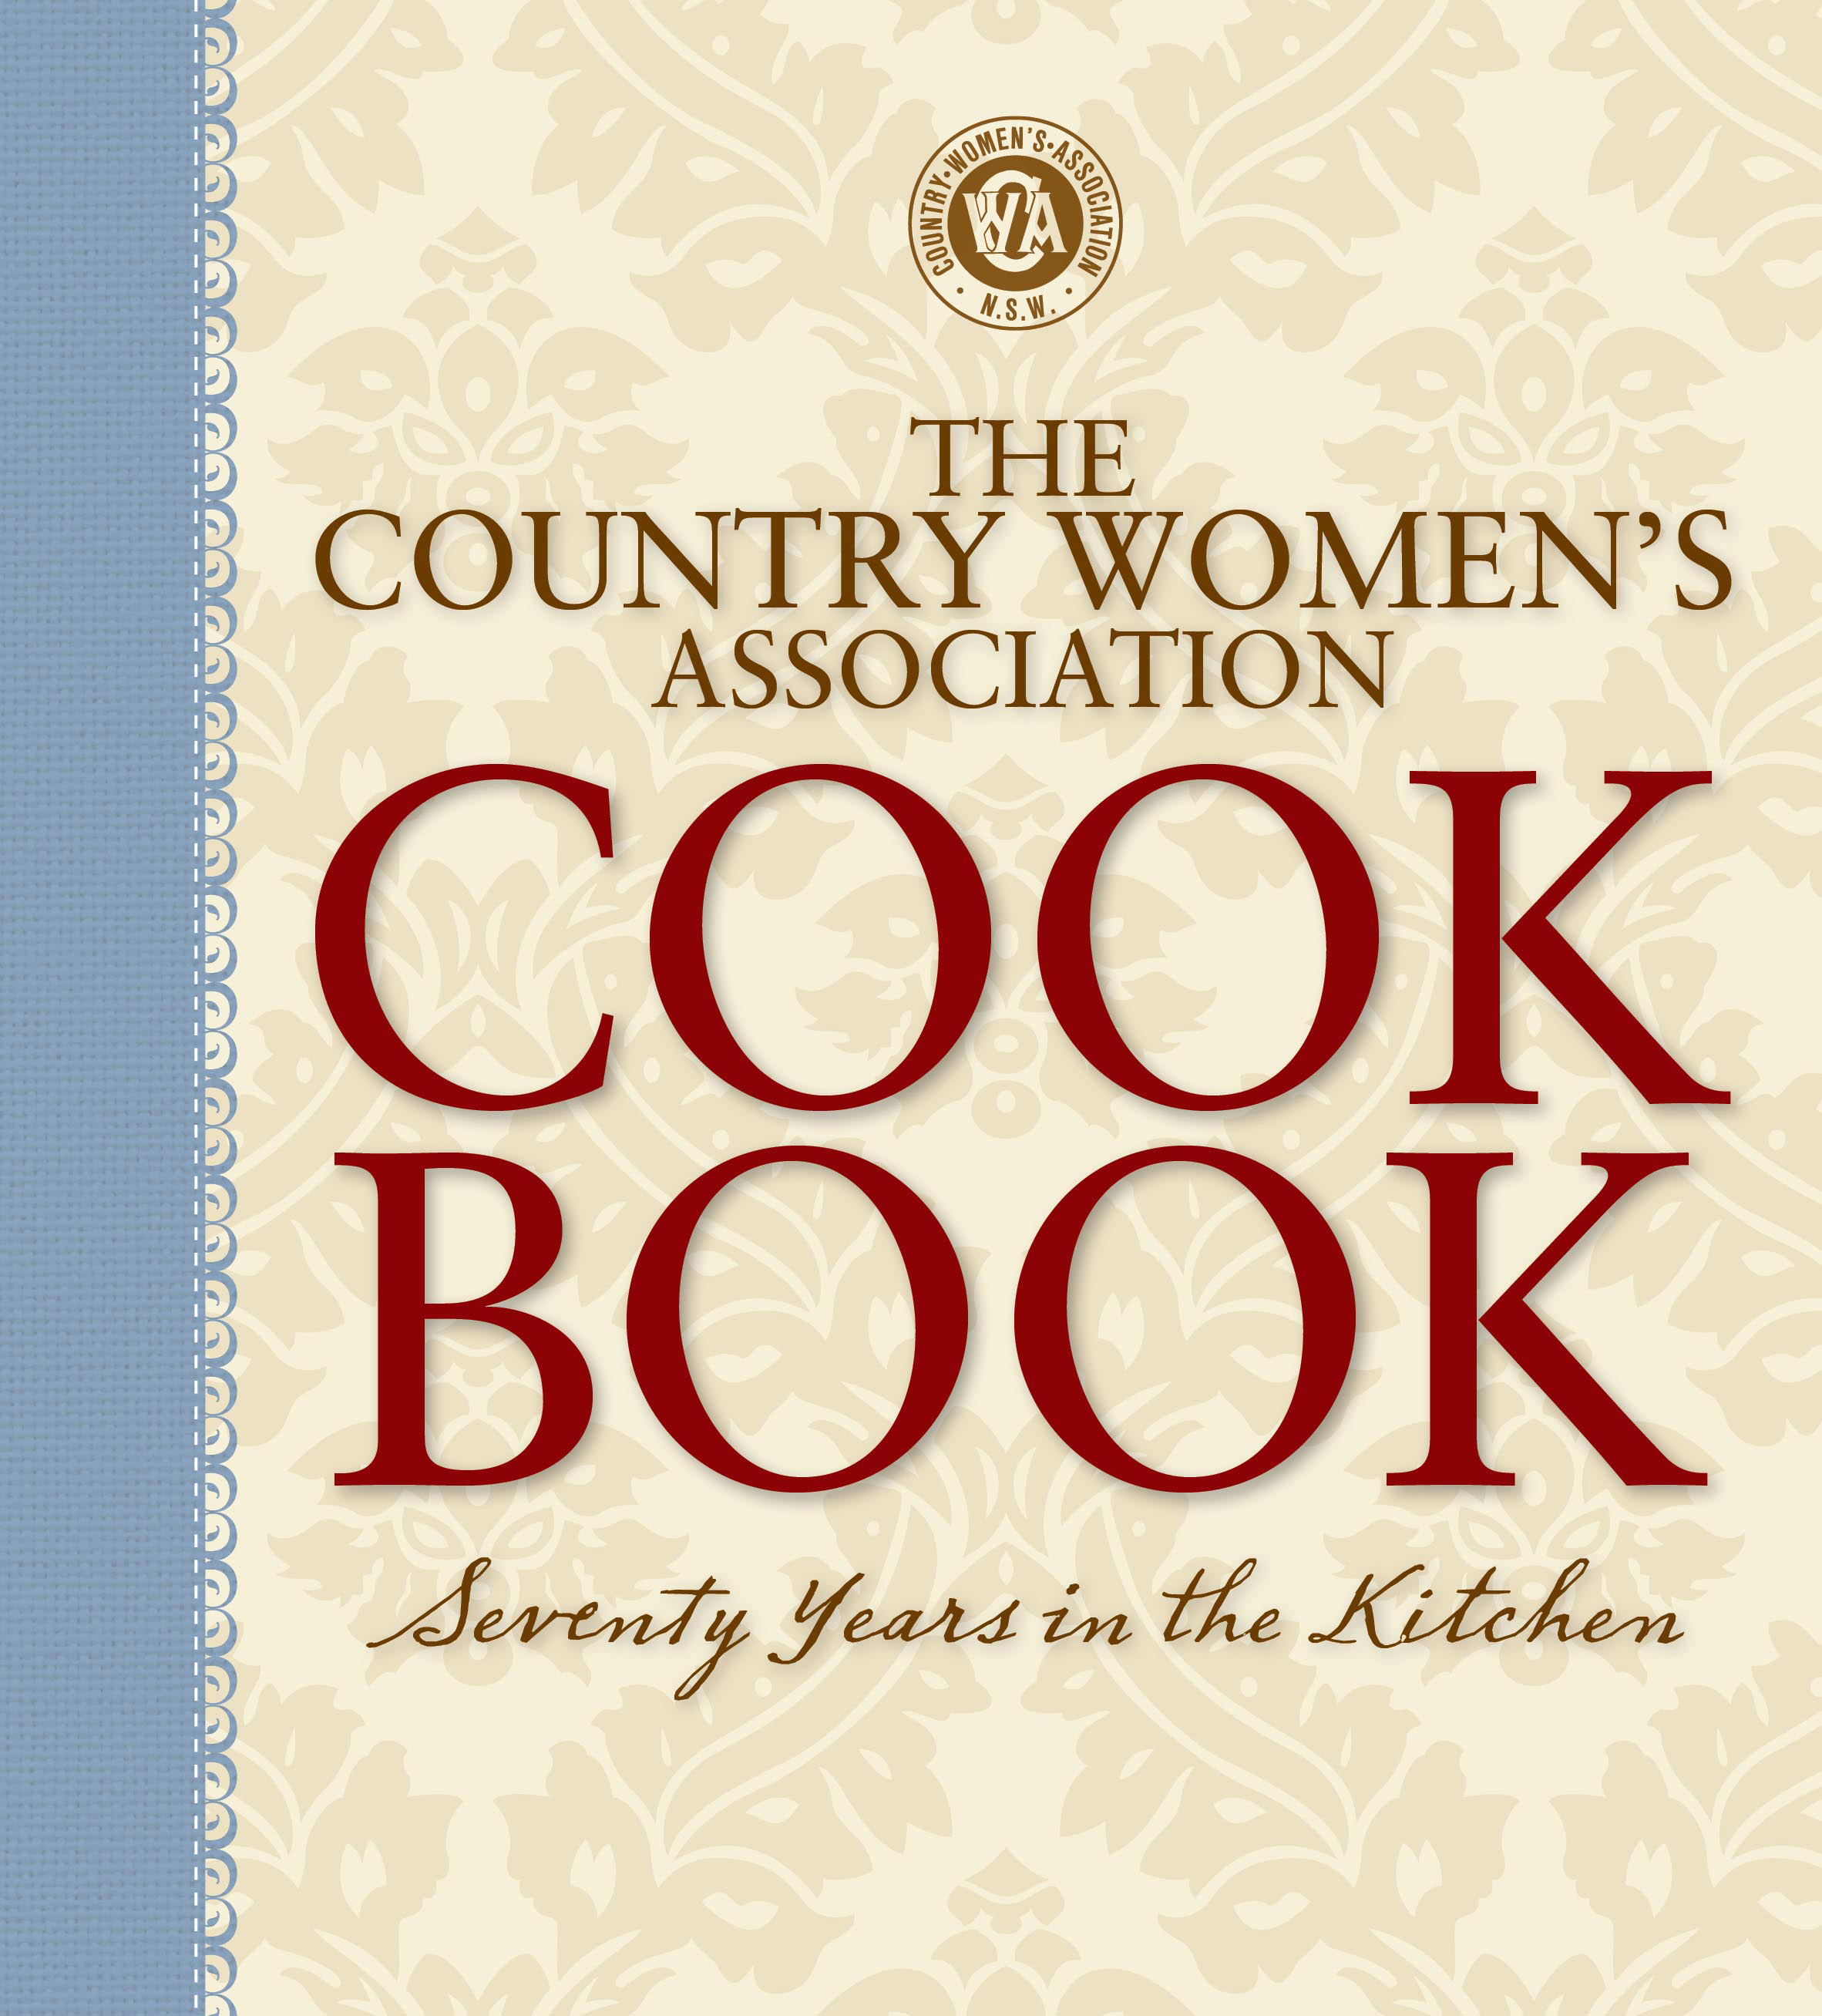 cooking. Lots and lots of cooking. 01 eng 216 CKB023000 WB 2.1 12 ...